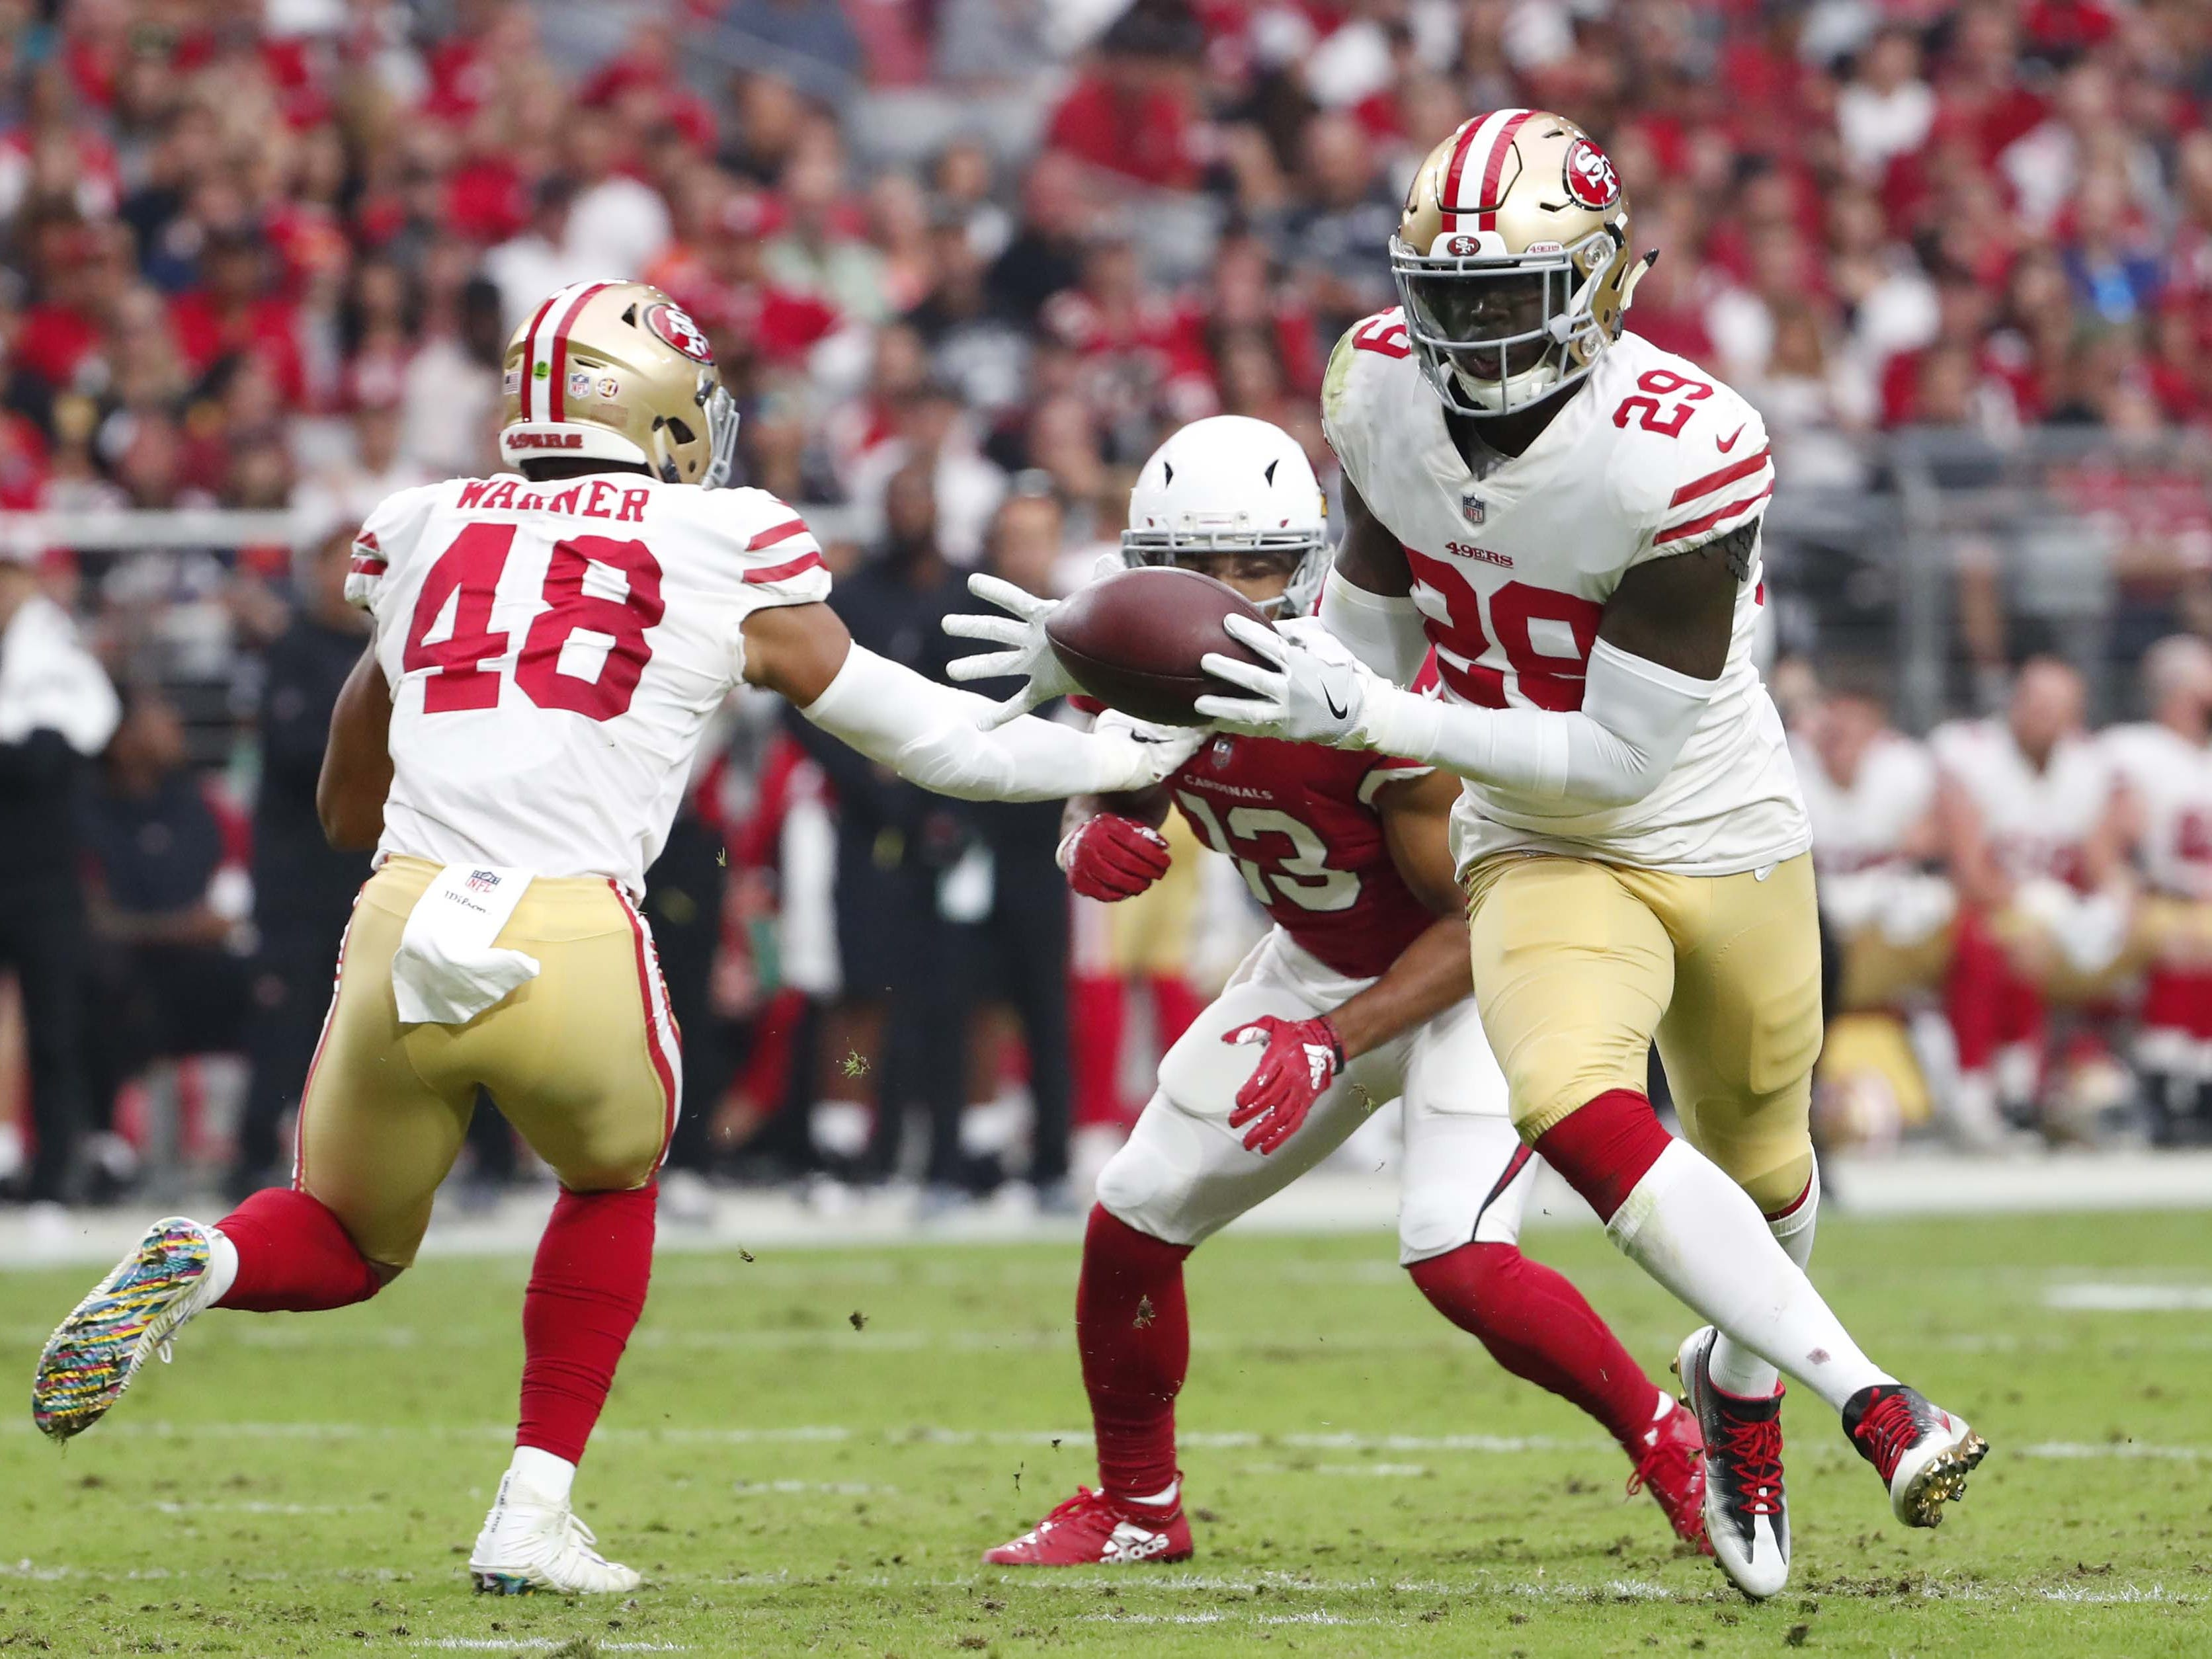 San Francisco 49ers strong safety Jaquiski Tartt (29) intercepts a pass against the Arizona Cardinals In the second quarter during NFL action against the San Francisco 49ers on Oct. 28 at State Farm Stadium.